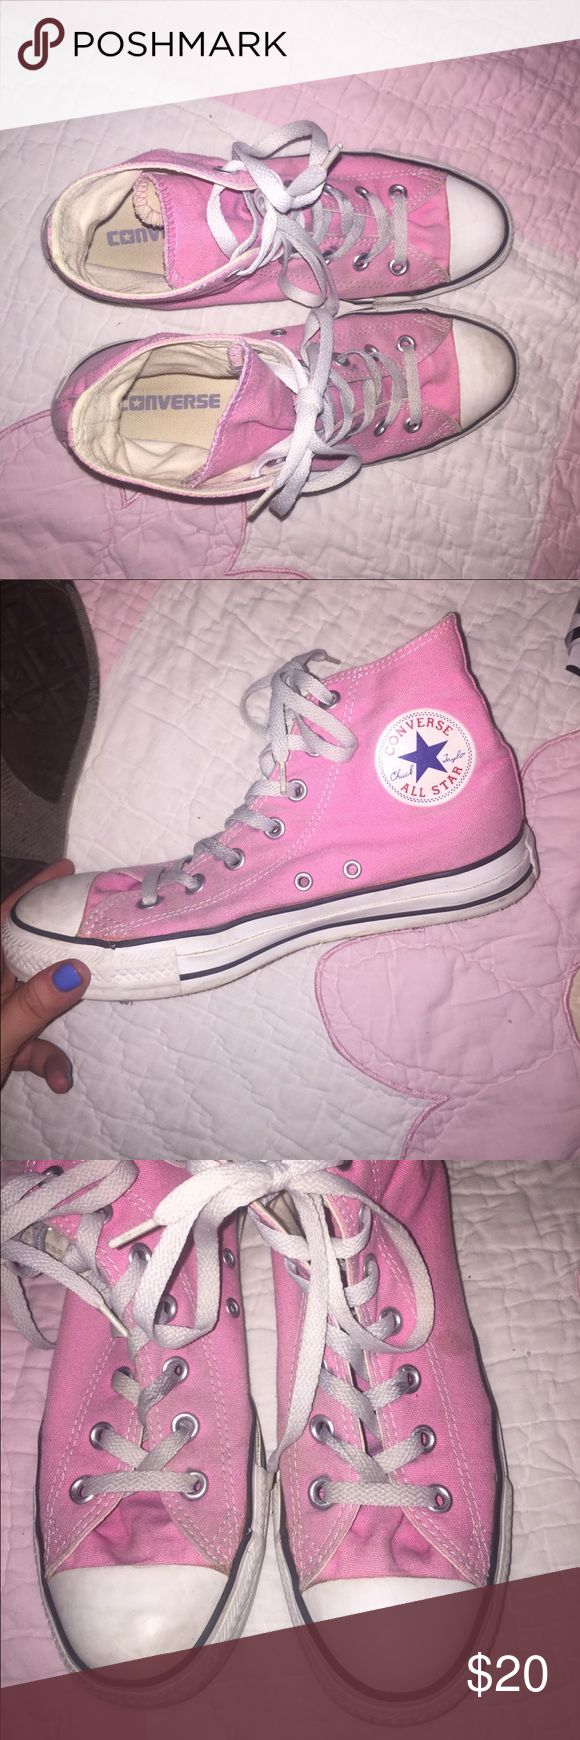 Light pink Converse high tops Fairly good condition! Easily cleanable! :) Converse Shoes Sneakers